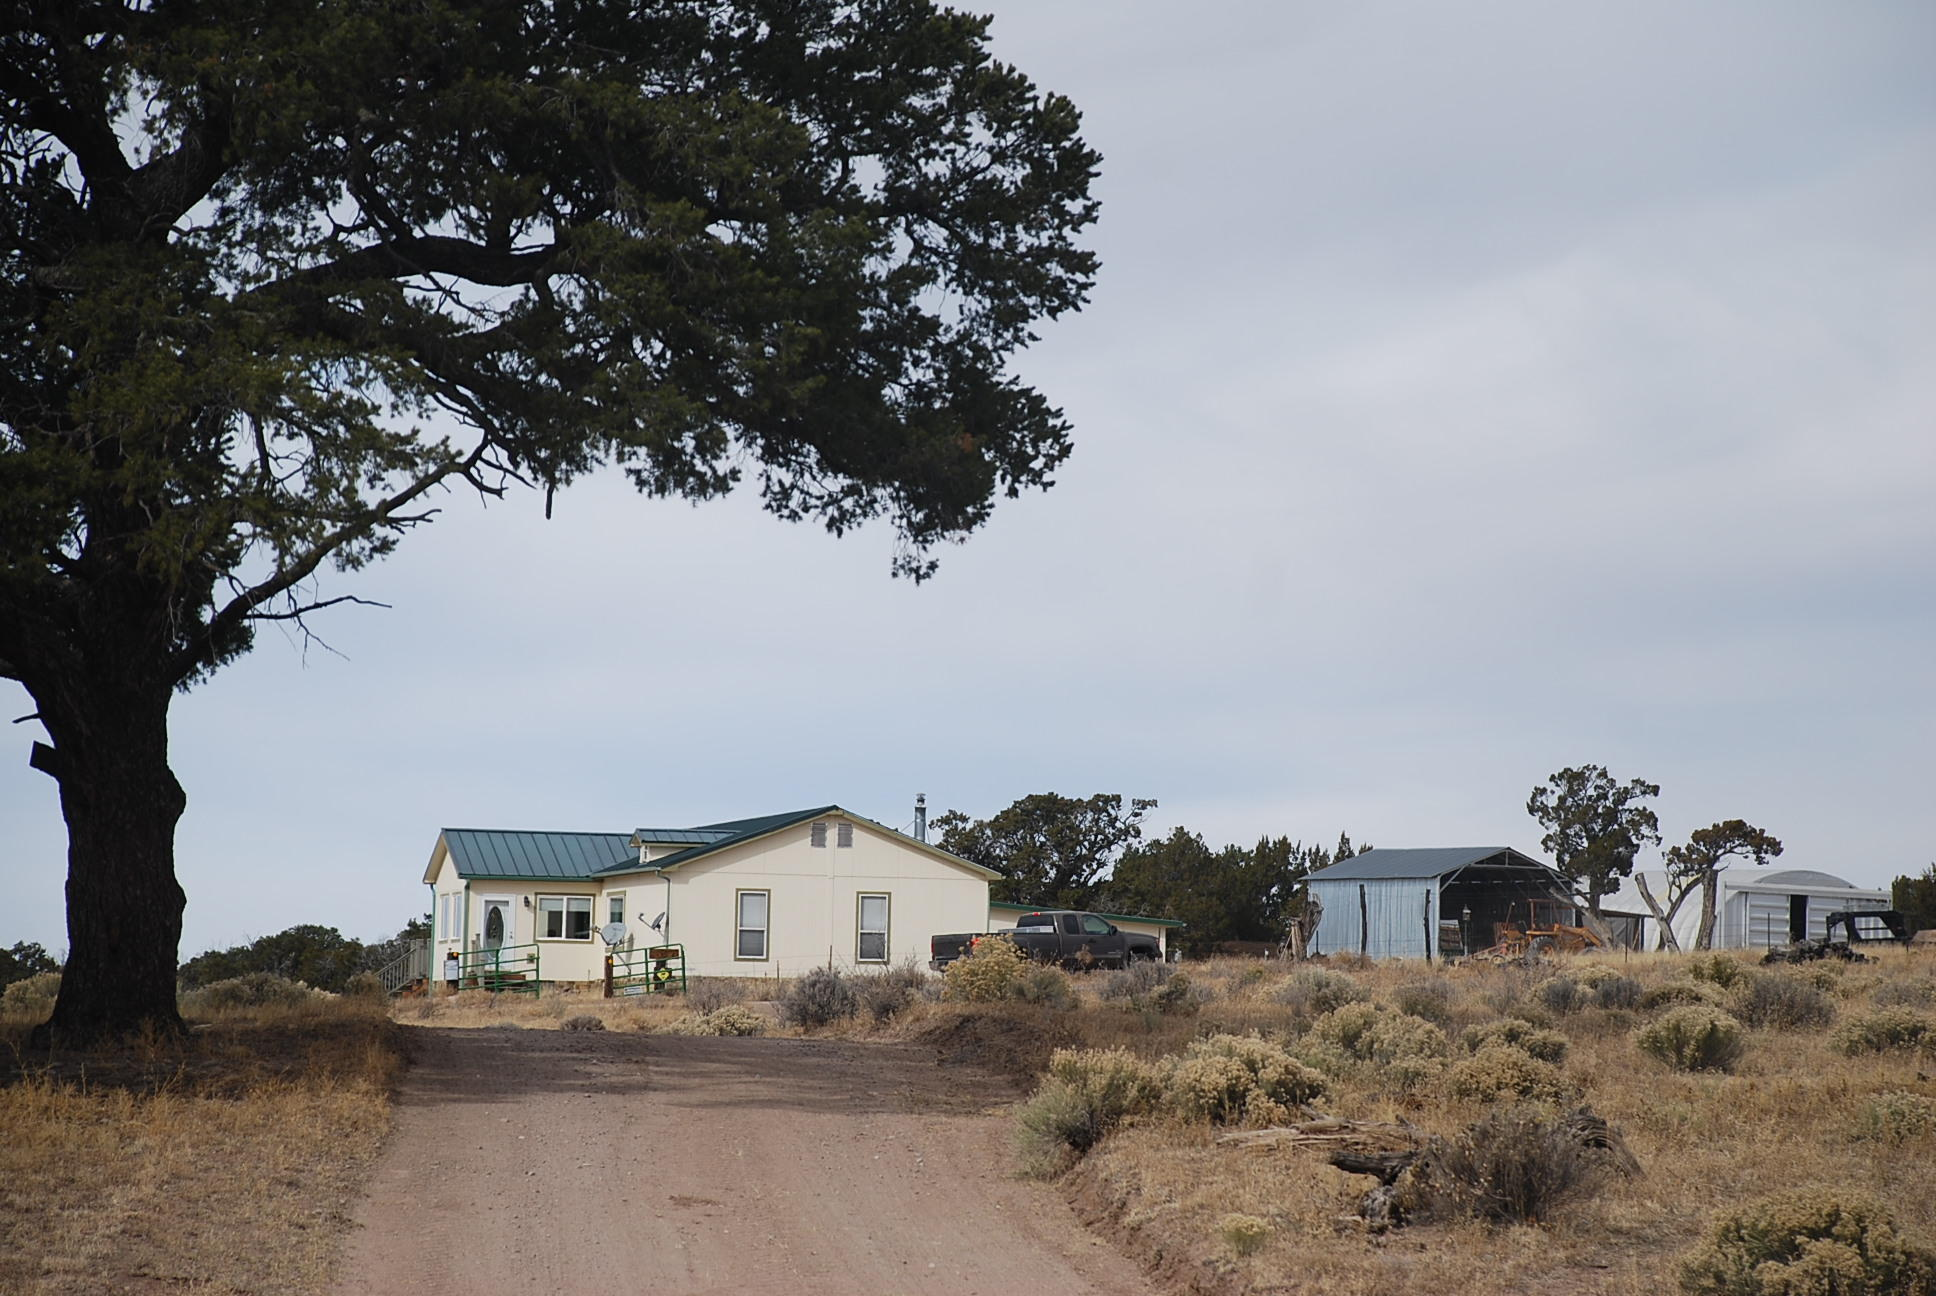 99 Rigsby Rd - McKelvey Ranch, Pie Town, NM 87827 - Pie Town, NM real estate listing